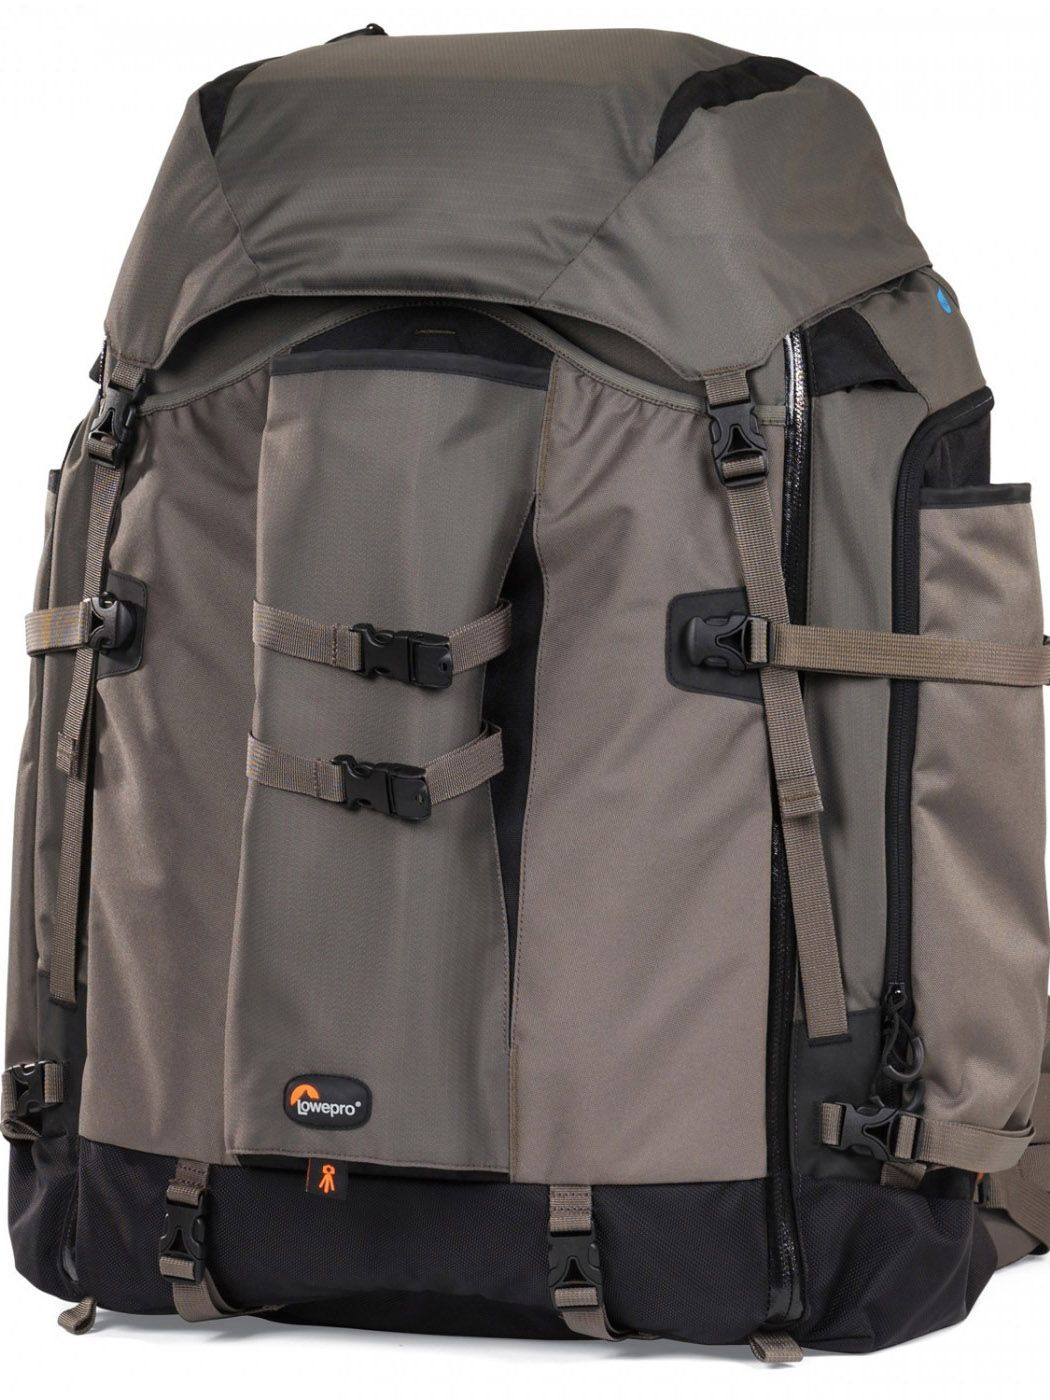 Lowepro Lp36421pww Flipside Sport 10l Aw Galaxy Bluelight Photo Hatchback 16l Grey Pro Trekker 600 Balo My Nh Shop